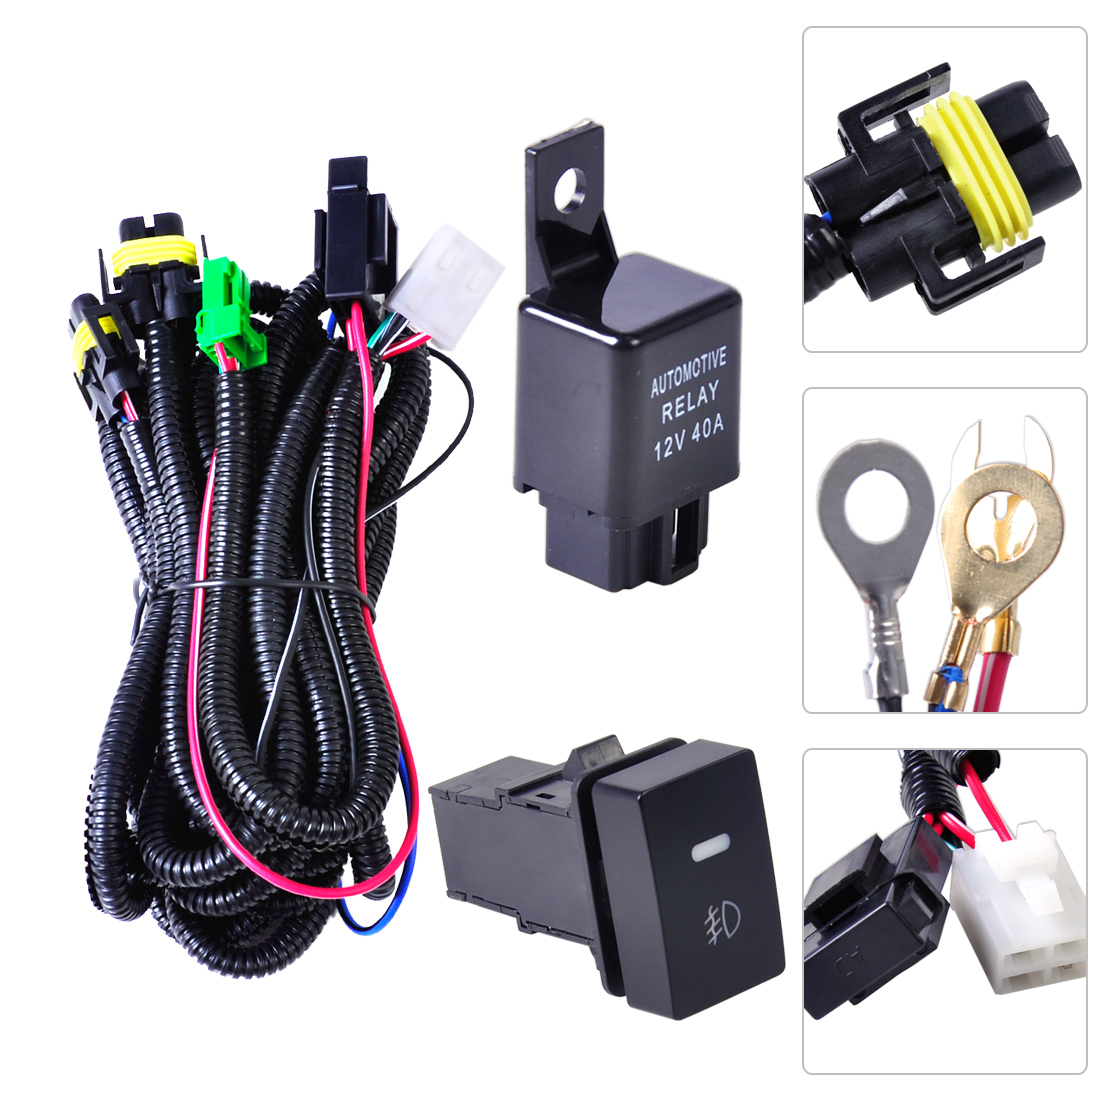 US $11.7 12% OFF|beler Wiring Harness Sockets Wire+Switch for H11 Fog on